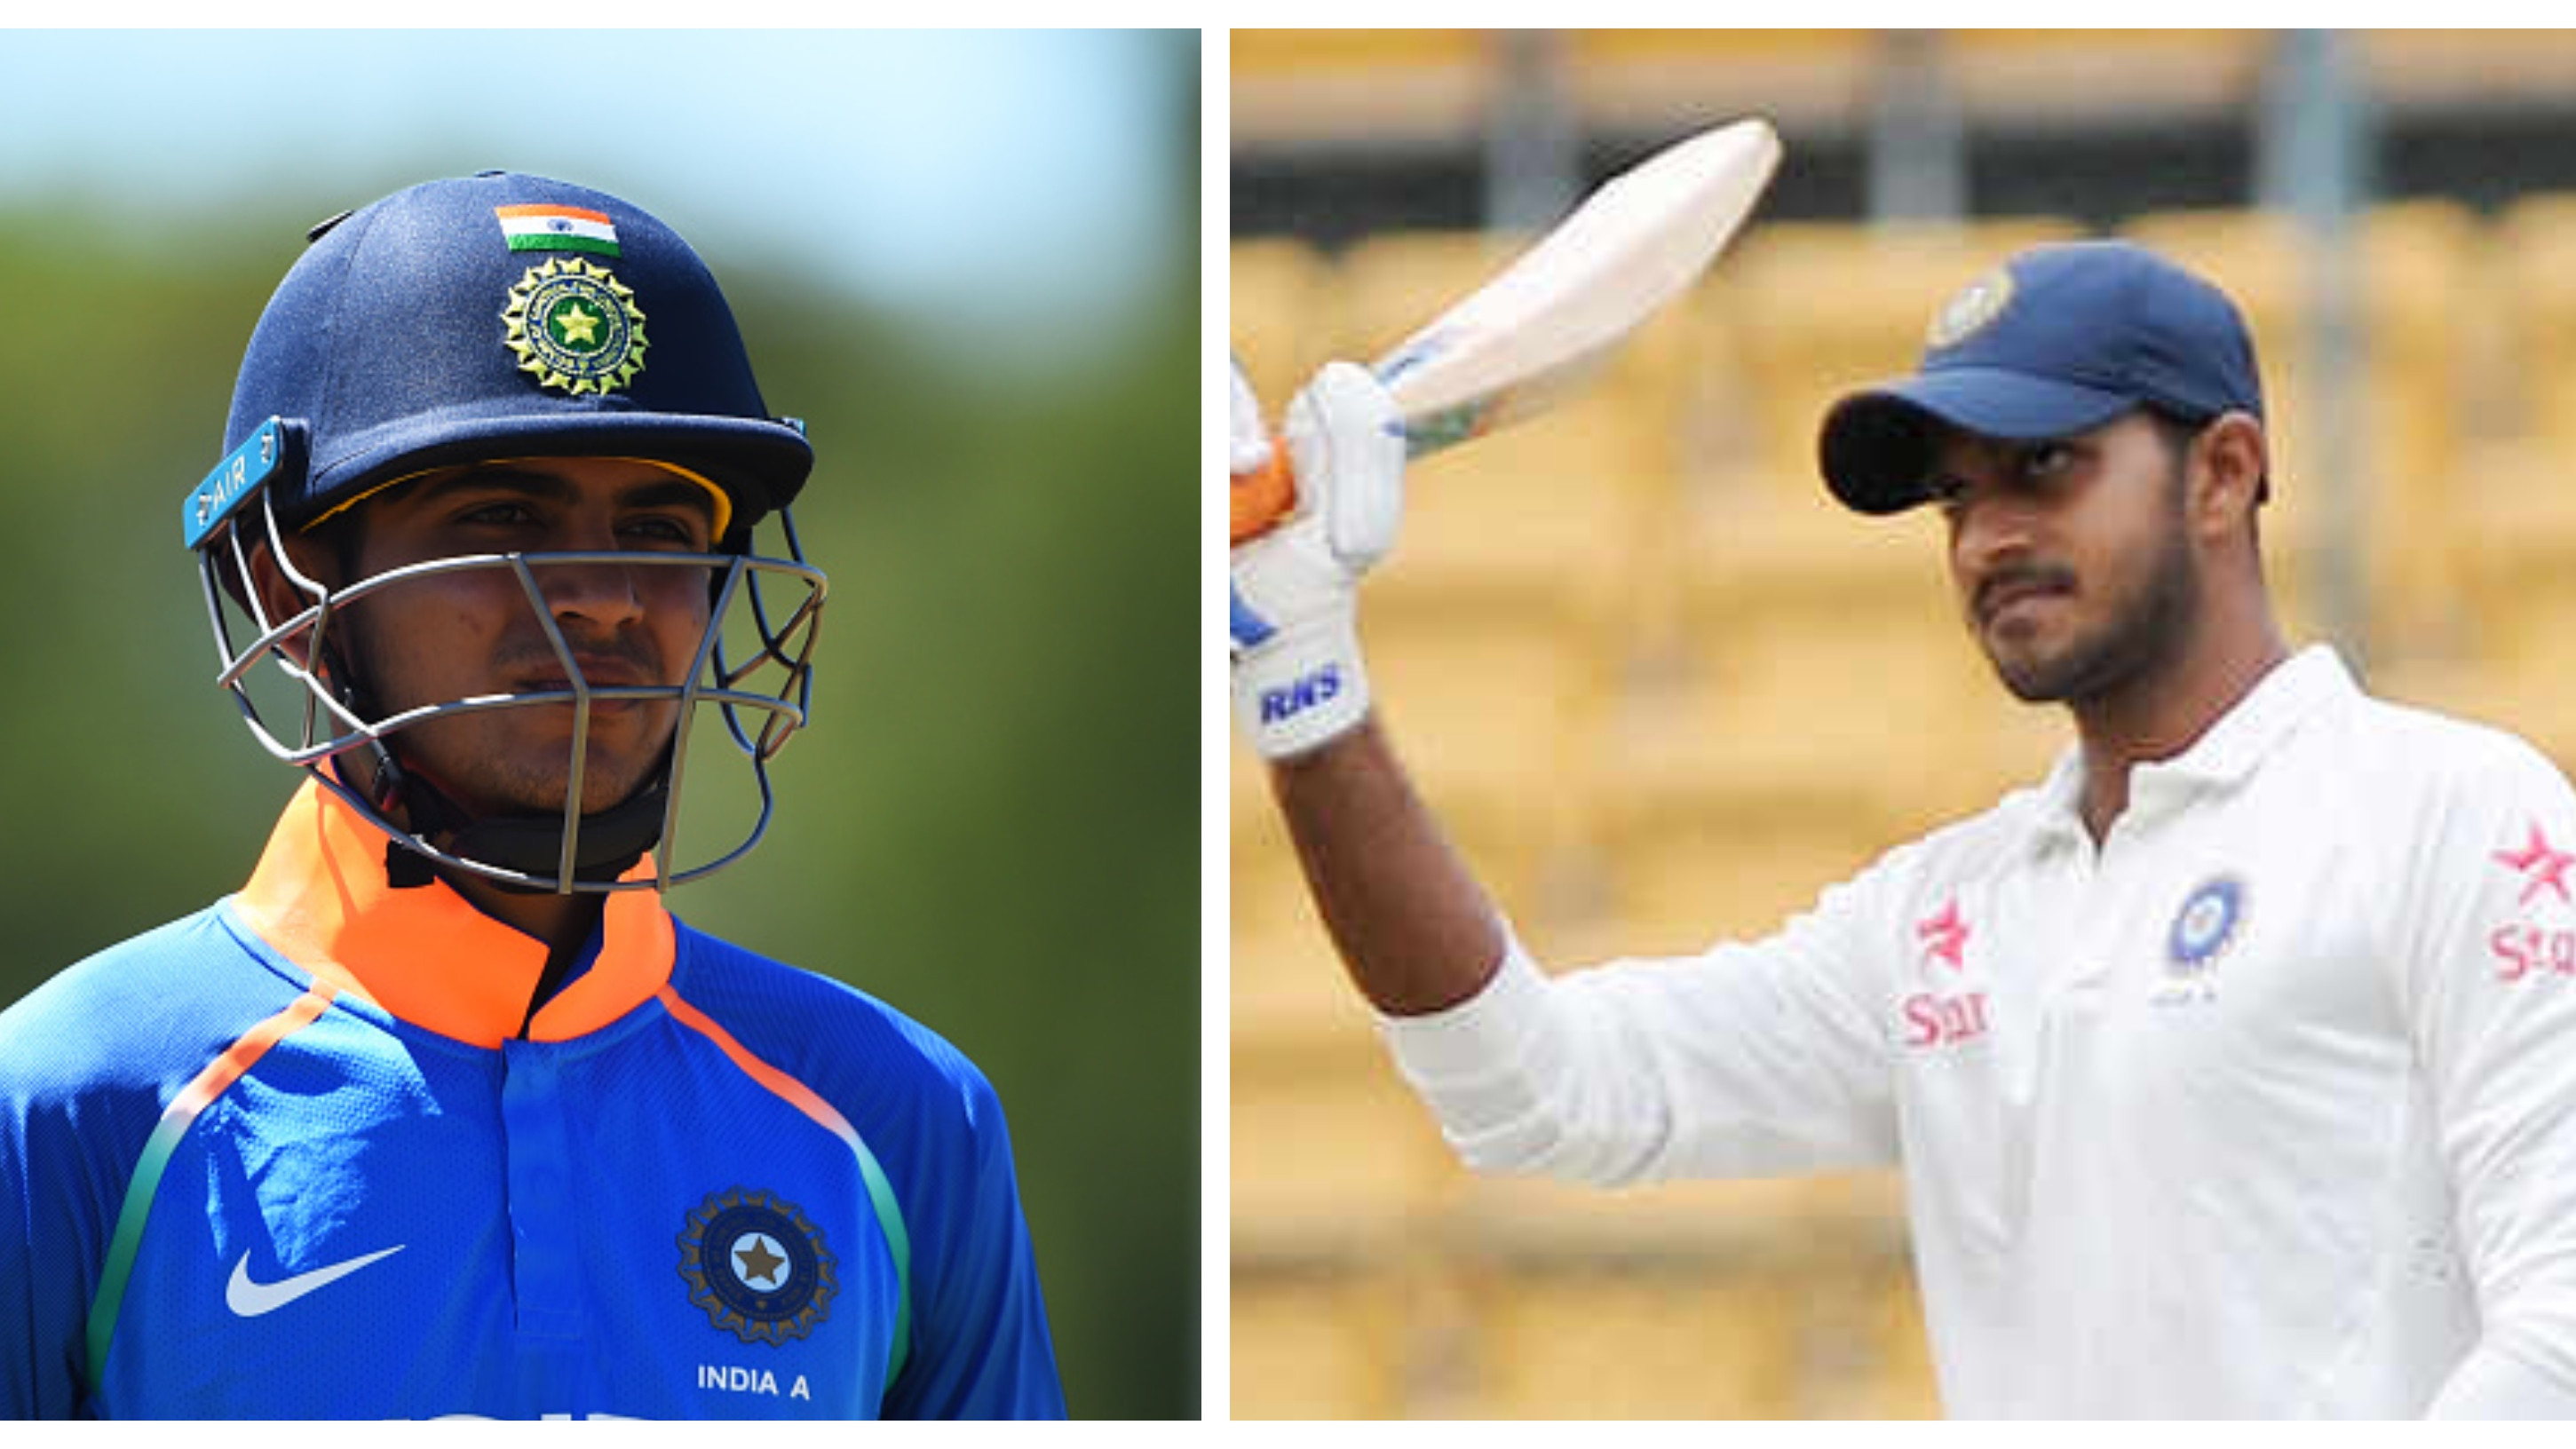 NZ A v IND A 2018: Shubman Gill and Vijay Shankar shine on Day 1 of the third unofficial Test